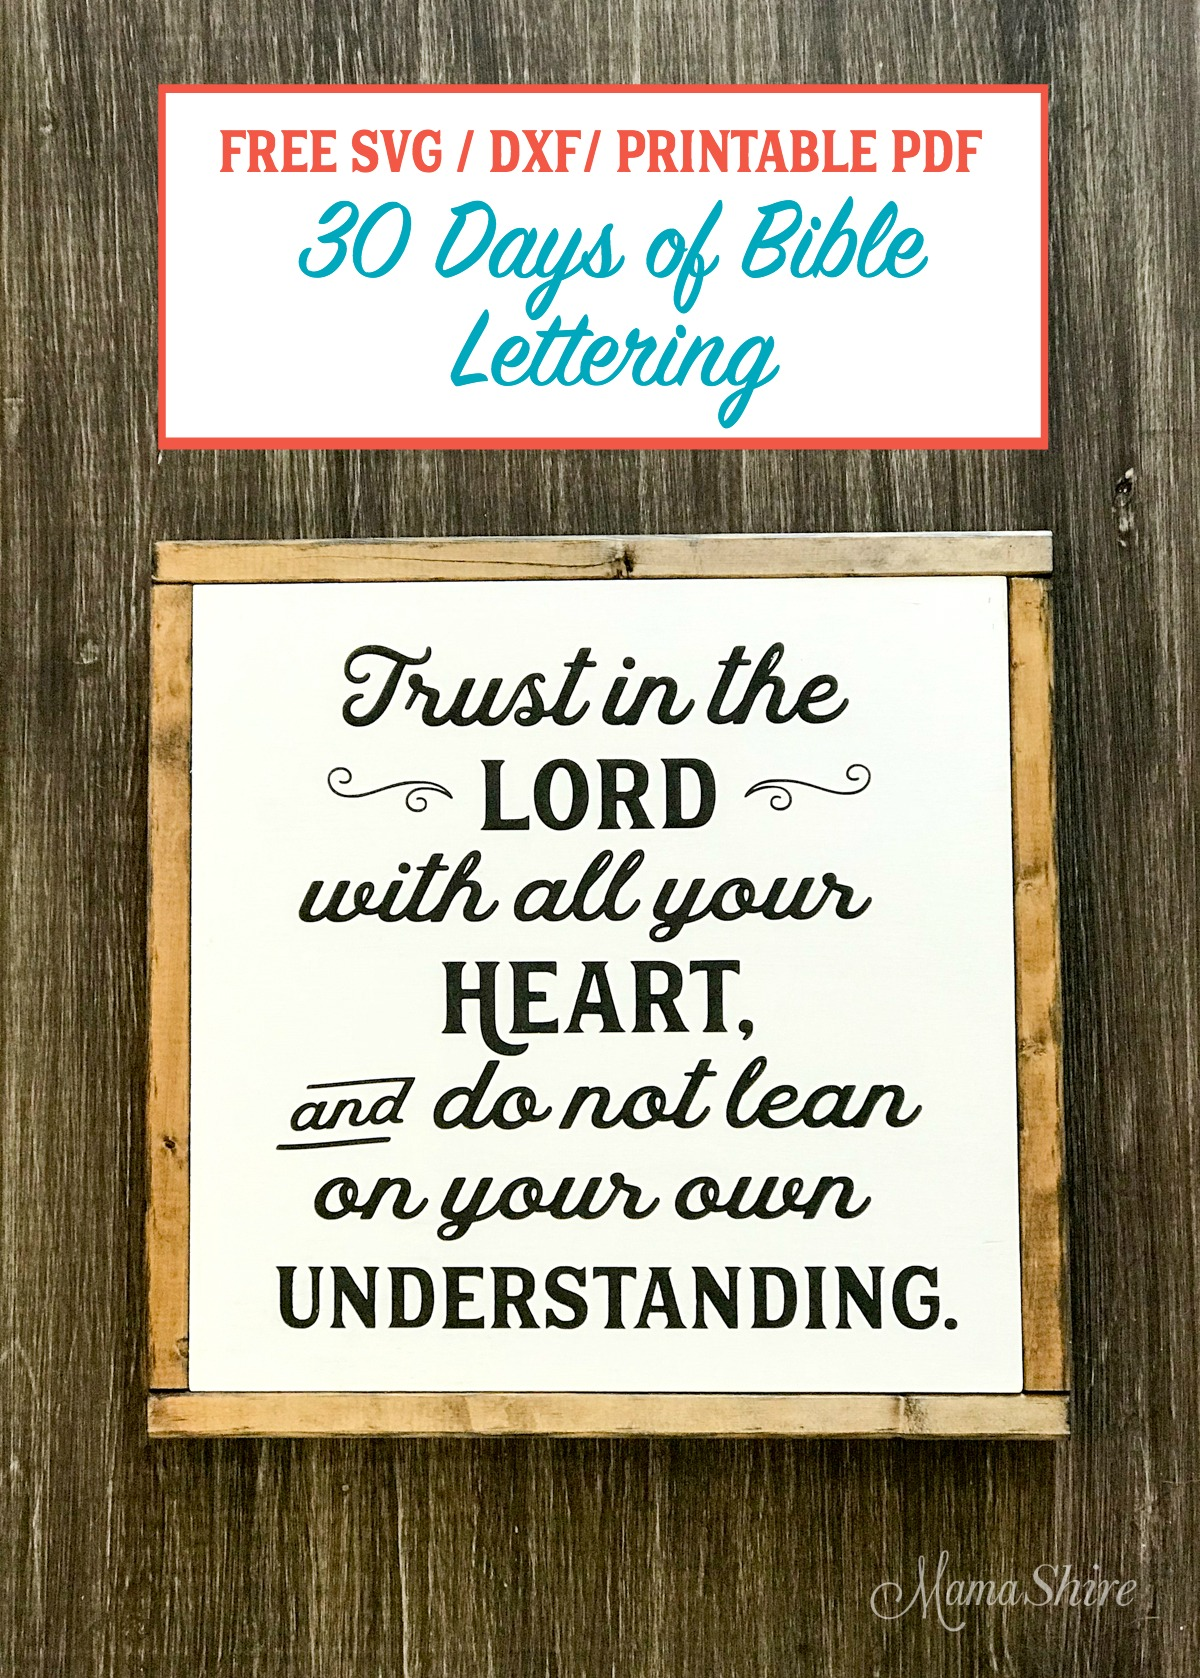 Trust in the Lord Wood Sign made with free SVG.